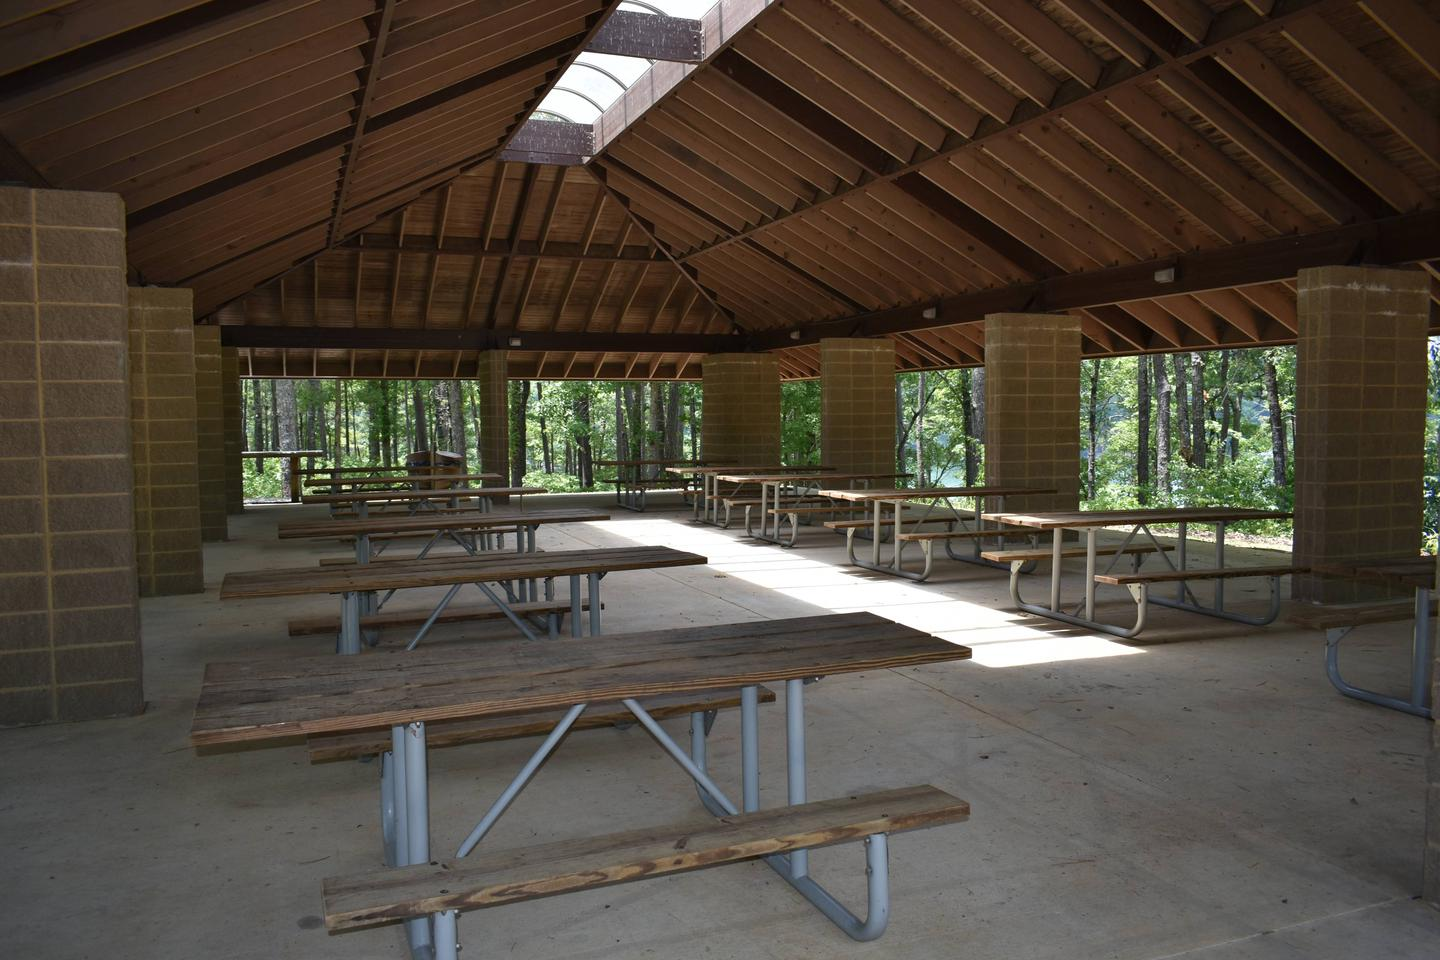 Corinth Recreation Area Day Use Picnic Pavilion2Corinth Recreation Area Day Use Picnic Pavilion July 10th, 2019